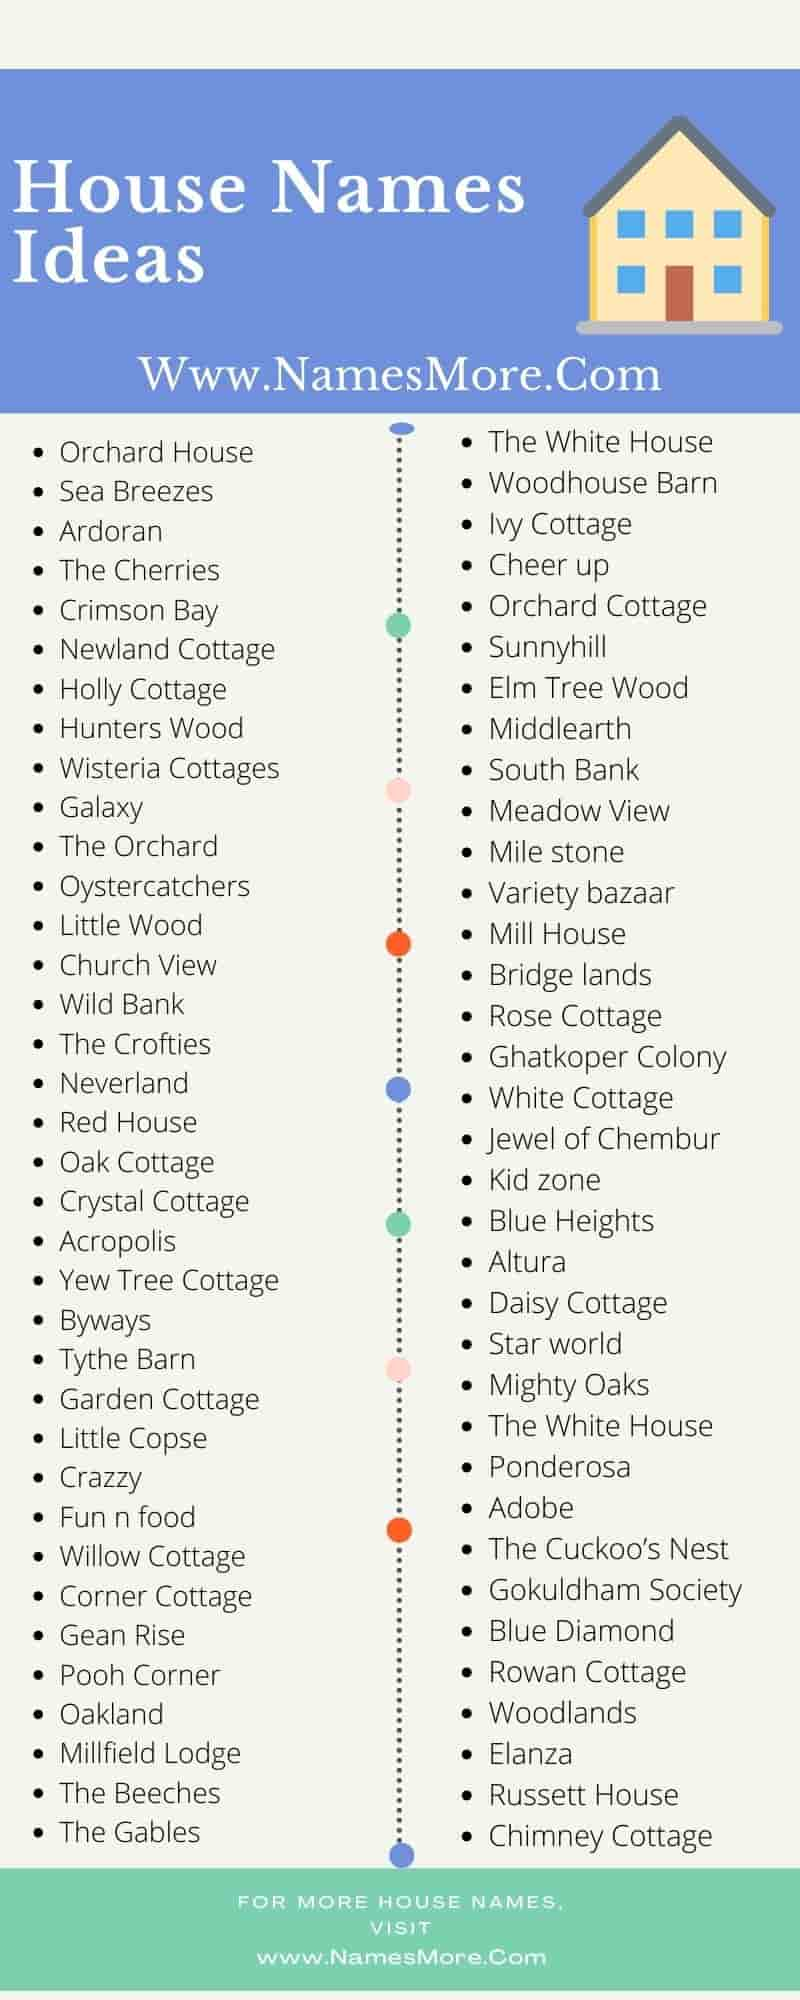 House Names Ideas Infographic